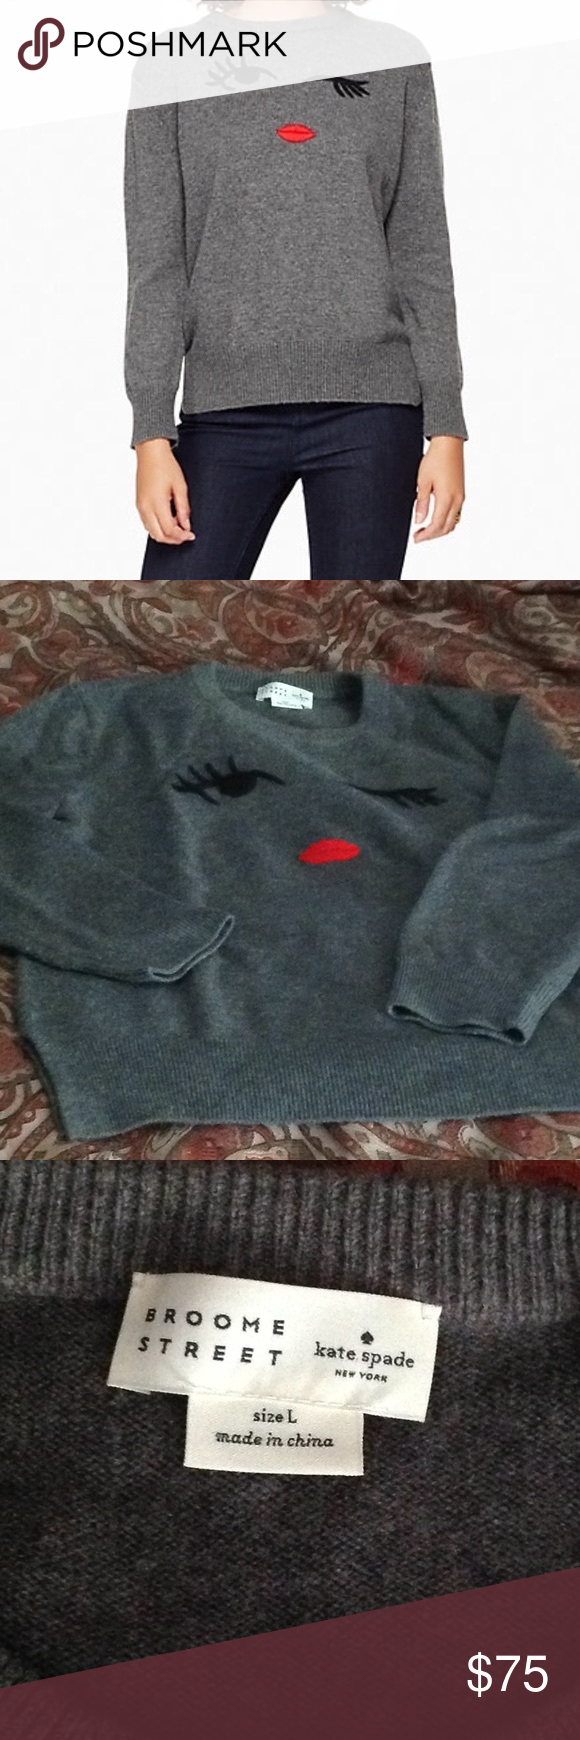 Kate Spade winking sweater 53% polyamide and 47% wool Broome Street sweater, so soft and comfortable.  Just doesn't fit anymore. kate spade Sweaters Crew & Scoop Necks